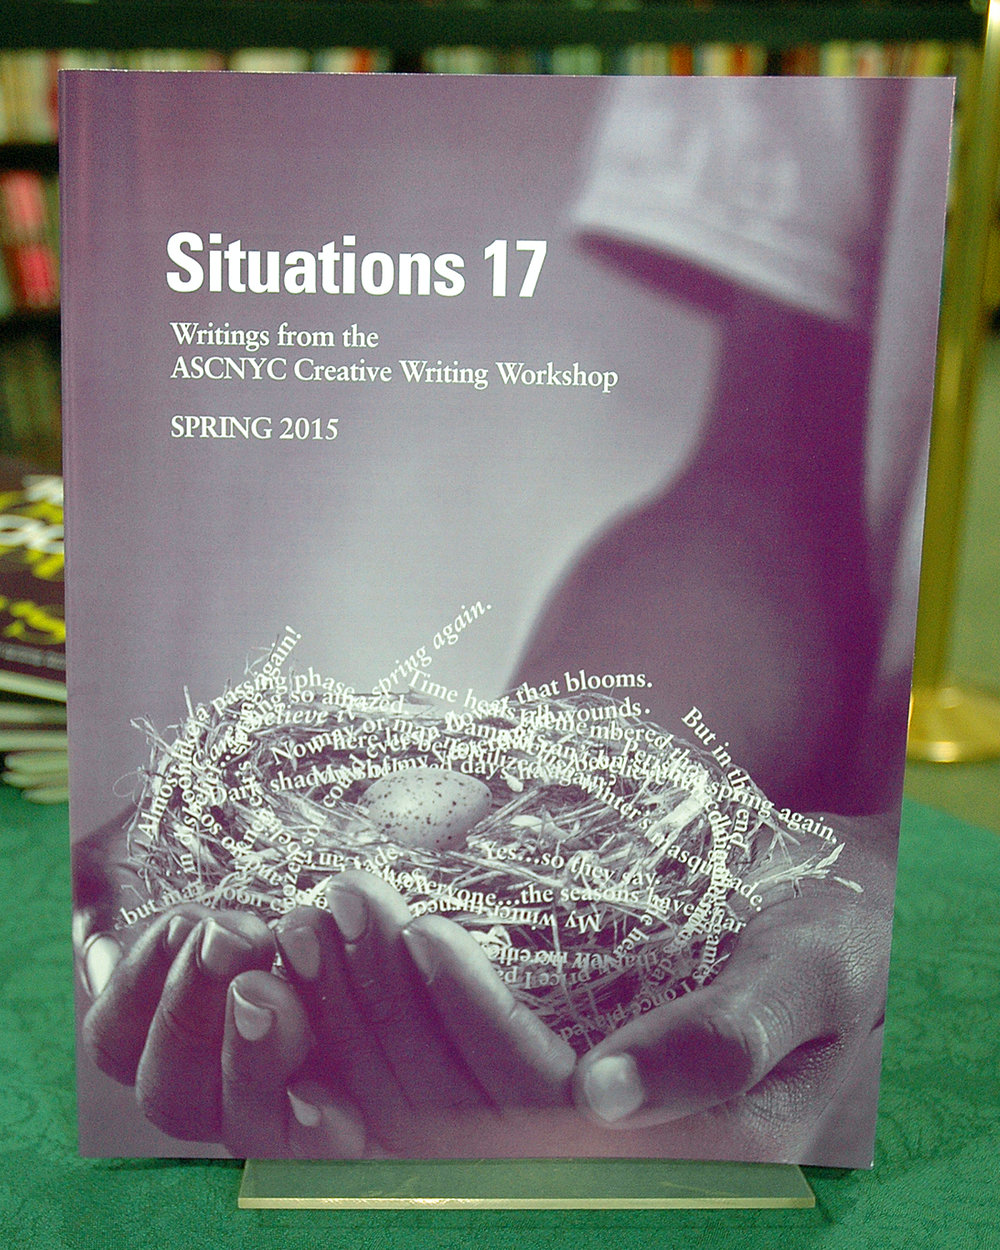 Situations 17 - Writings from the ASCNYC Creative Writing Workshop - Spring 2015